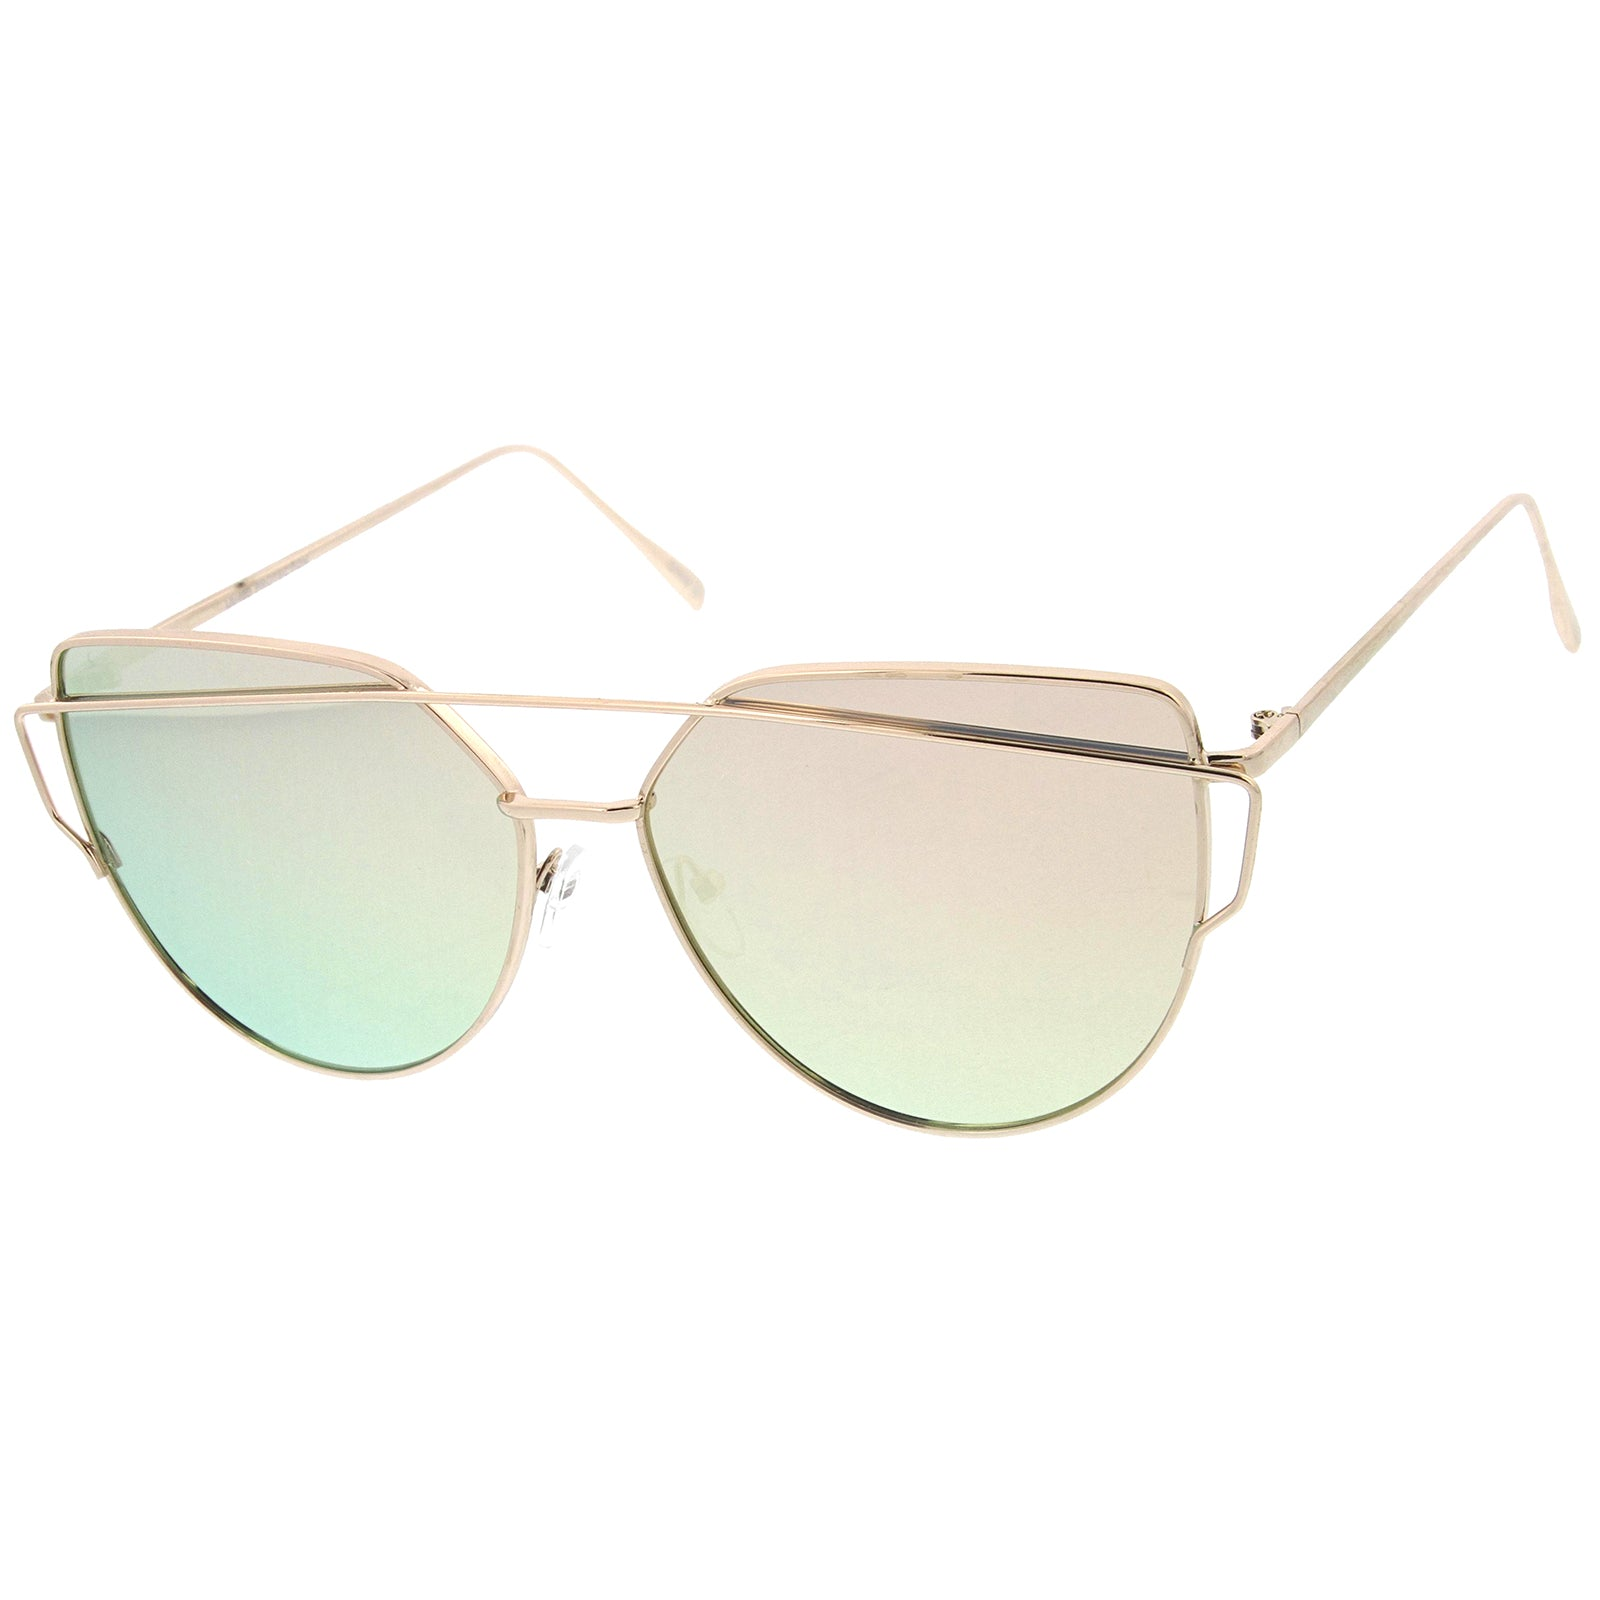 Oversize Metal Frame Thin Temple Color Mirror Flat Lens Aviator Sunglasses 62mm - sunglass.la - 22